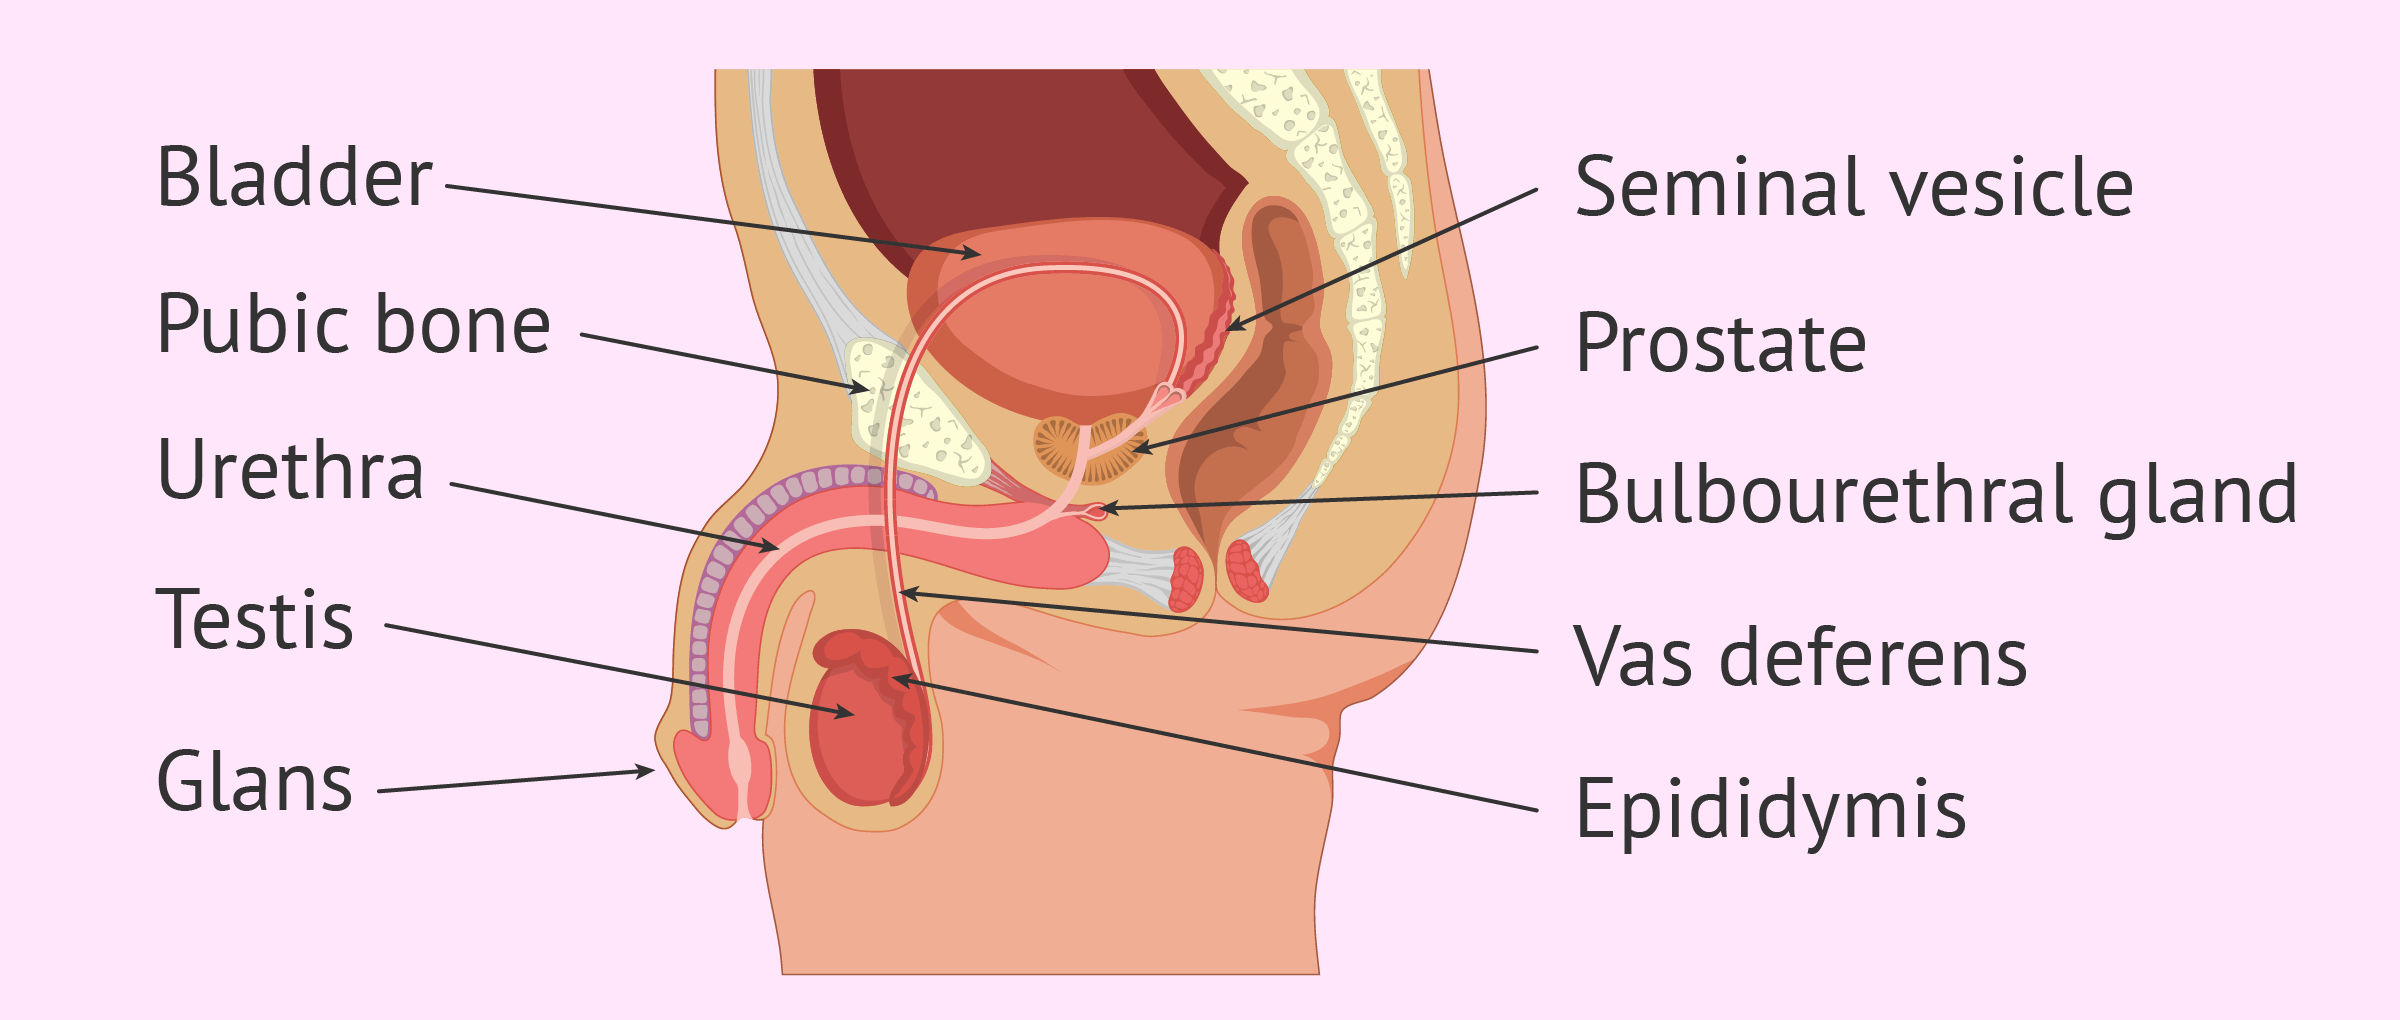 ENLARGED PENIS HEAD OR BALANITIS ALL YOU NEED TO KNOW